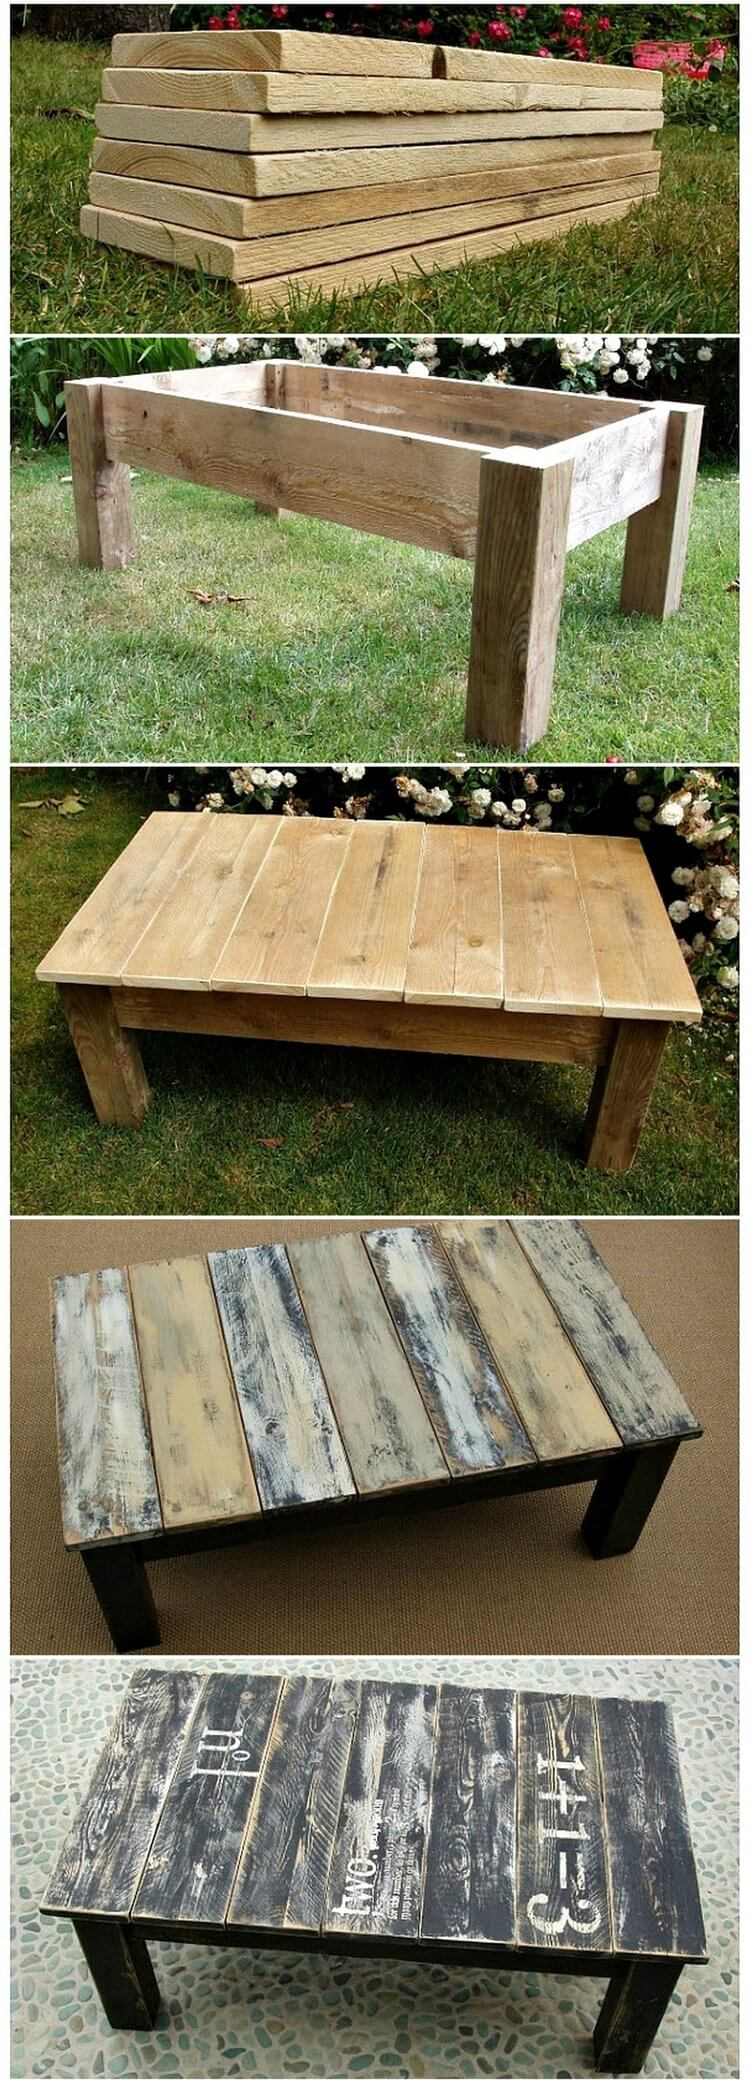 - 45 Rustic Coffee Tables And DIY Plans Rustic Home Decor And